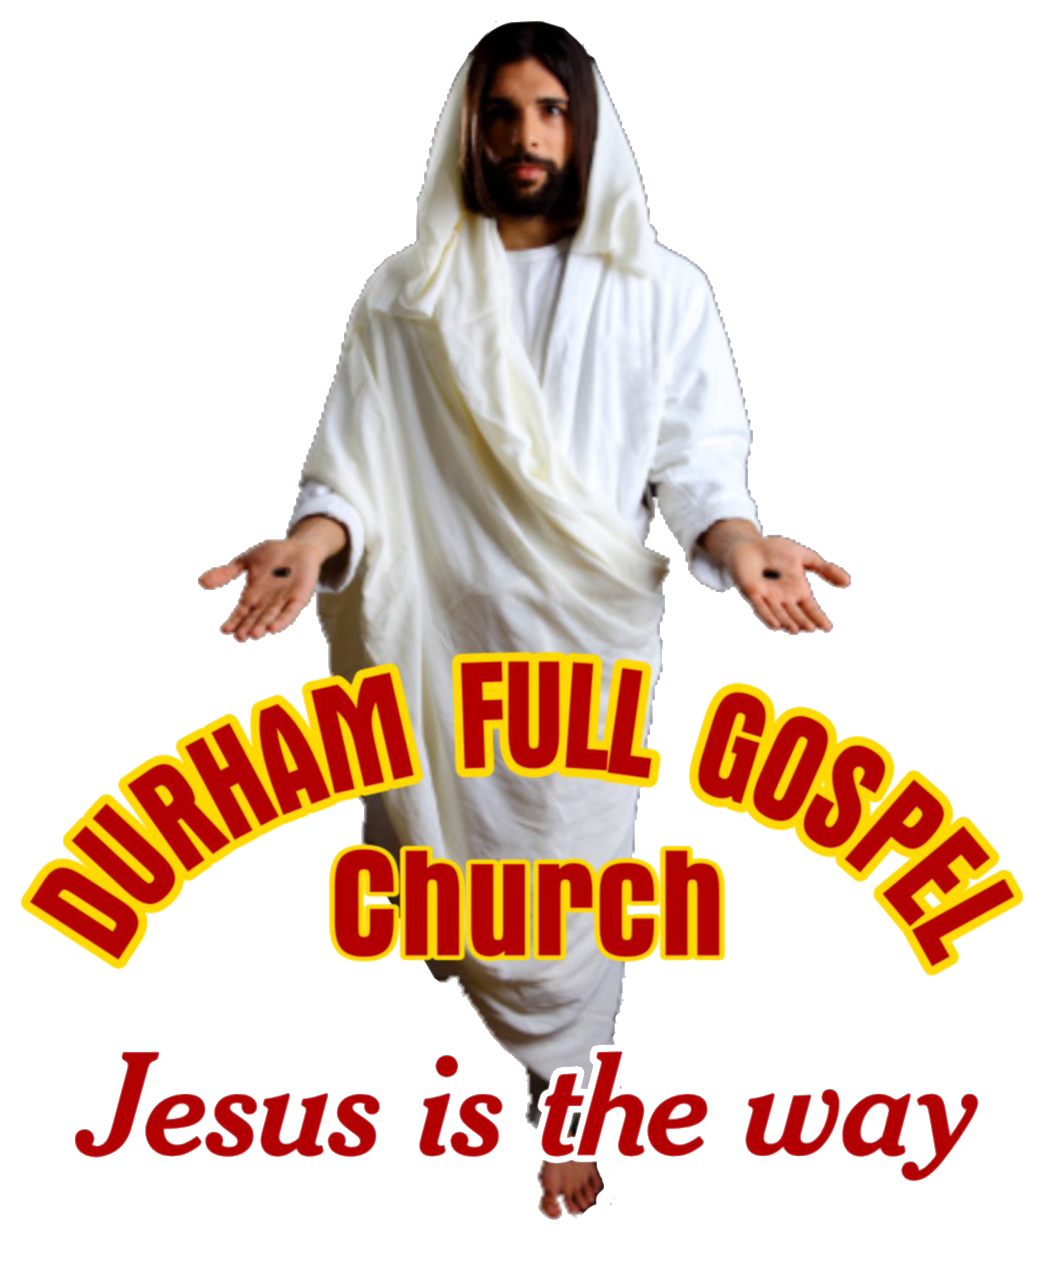 Durham Full Gospel Church